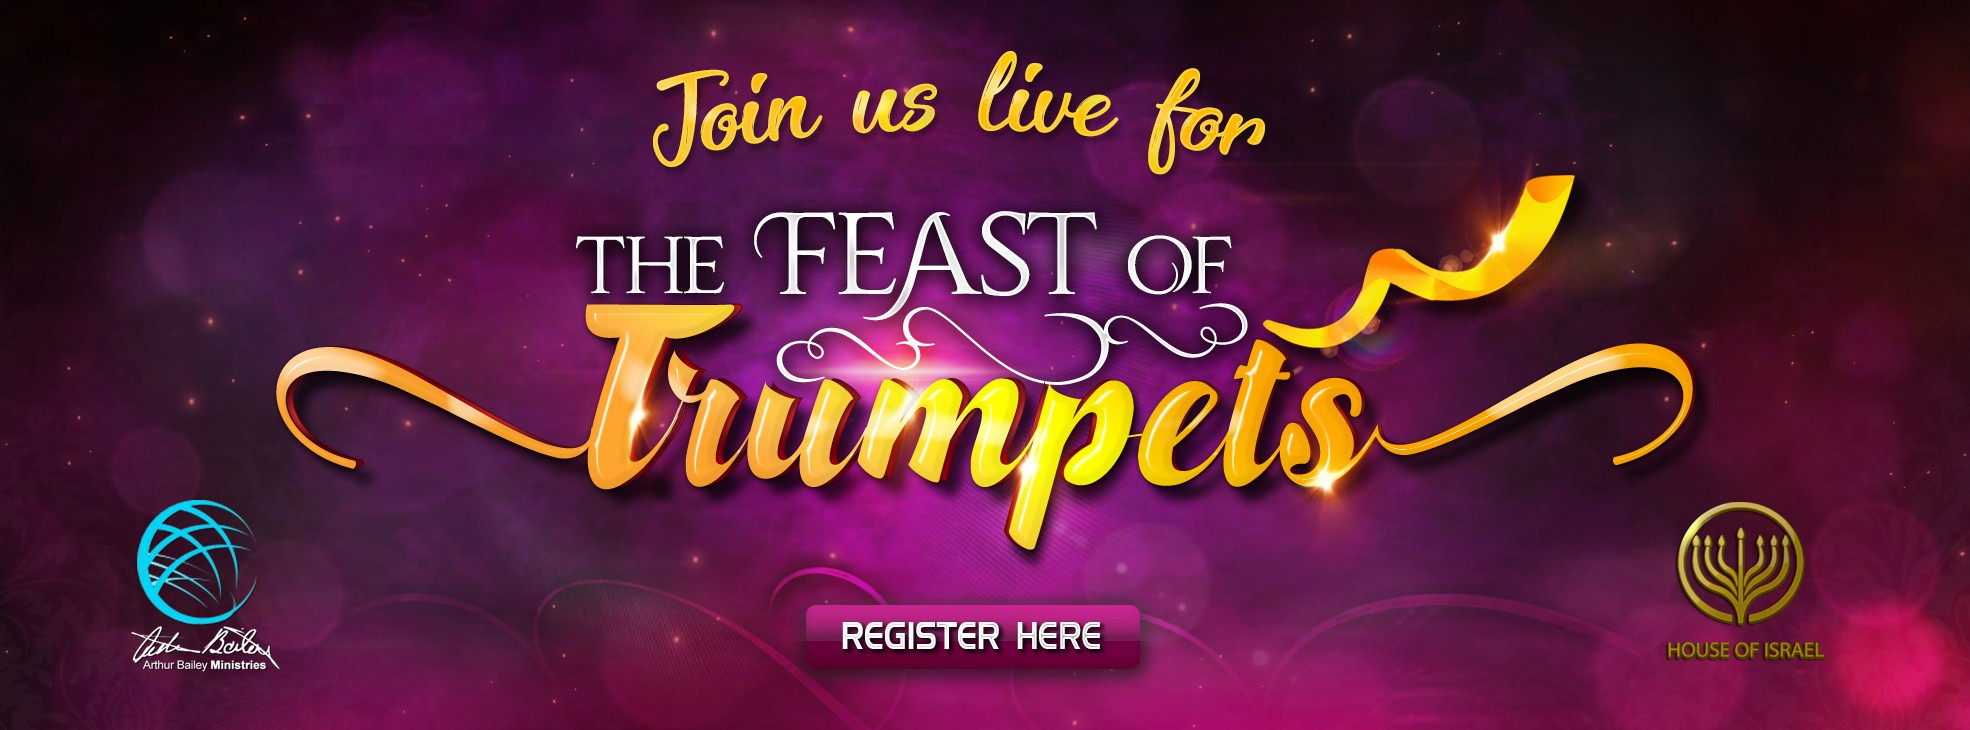 Feast of Trumpets 2019 Registration - Arthur Bailey Ministries